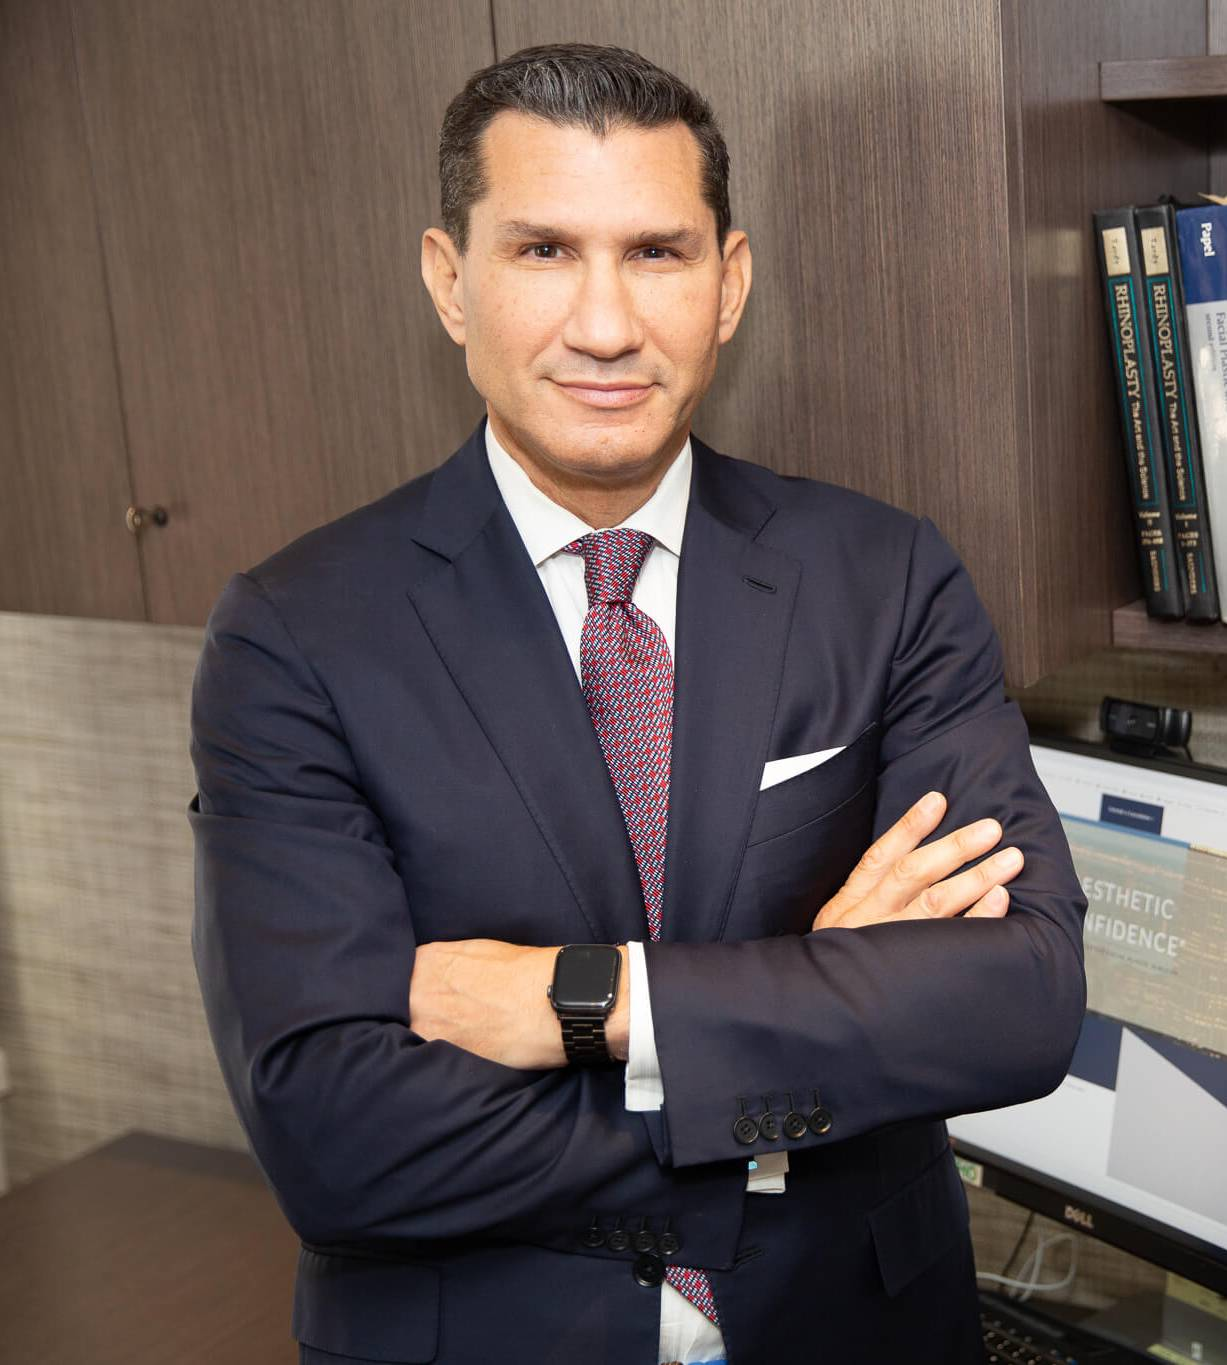 PDO Thread Lift surgeon, Dr. Philip Miller in NYC